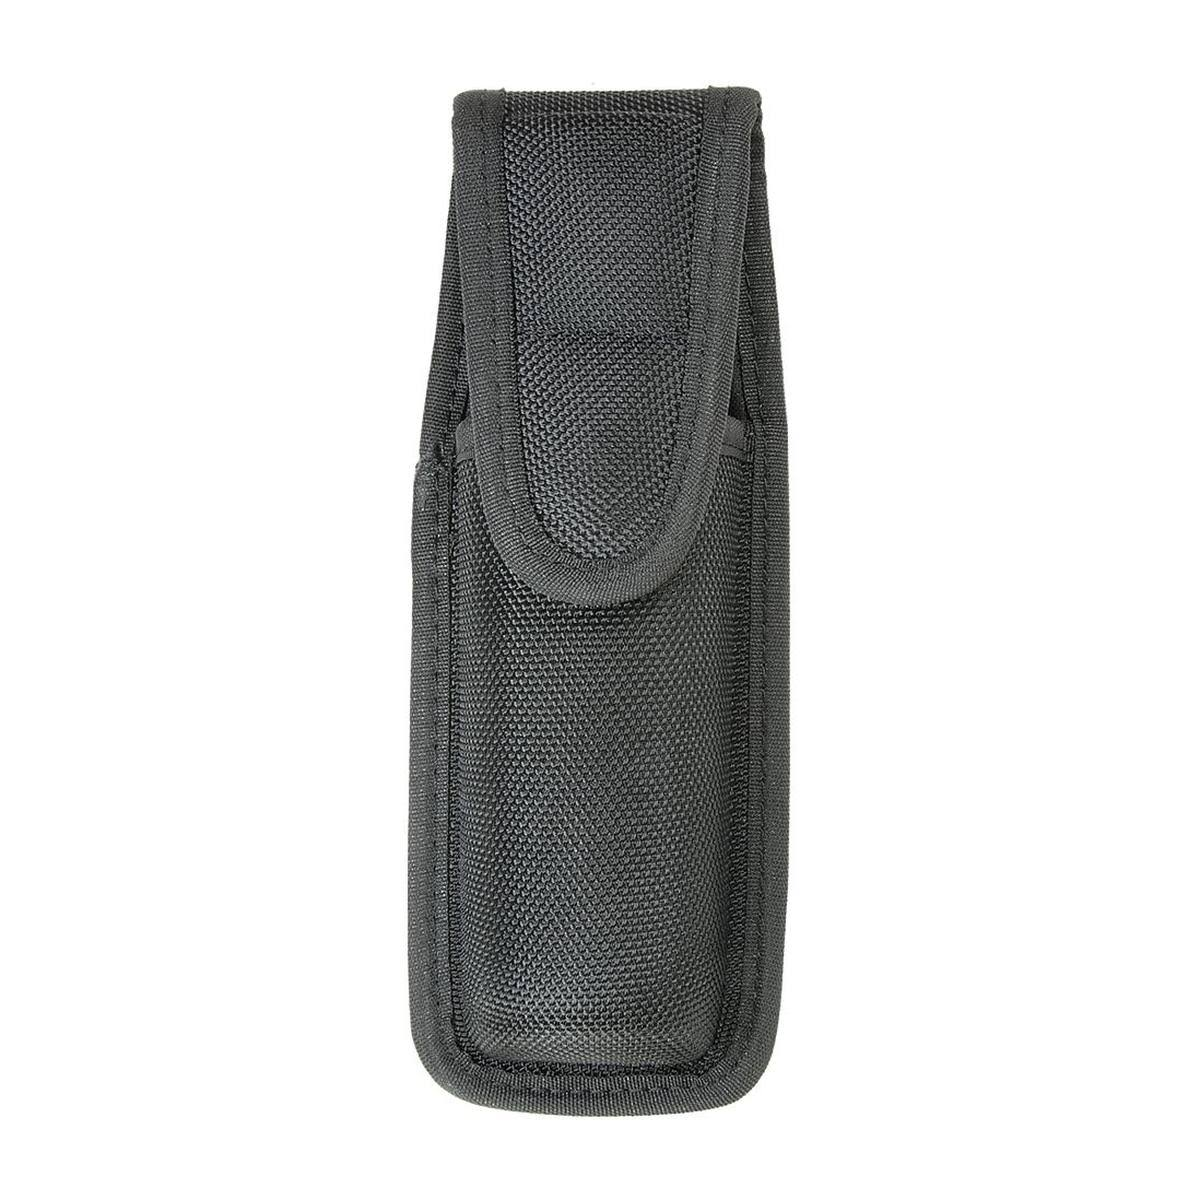 Heros Pride 1060 Pepper Spray Case - Black Nylon, Large